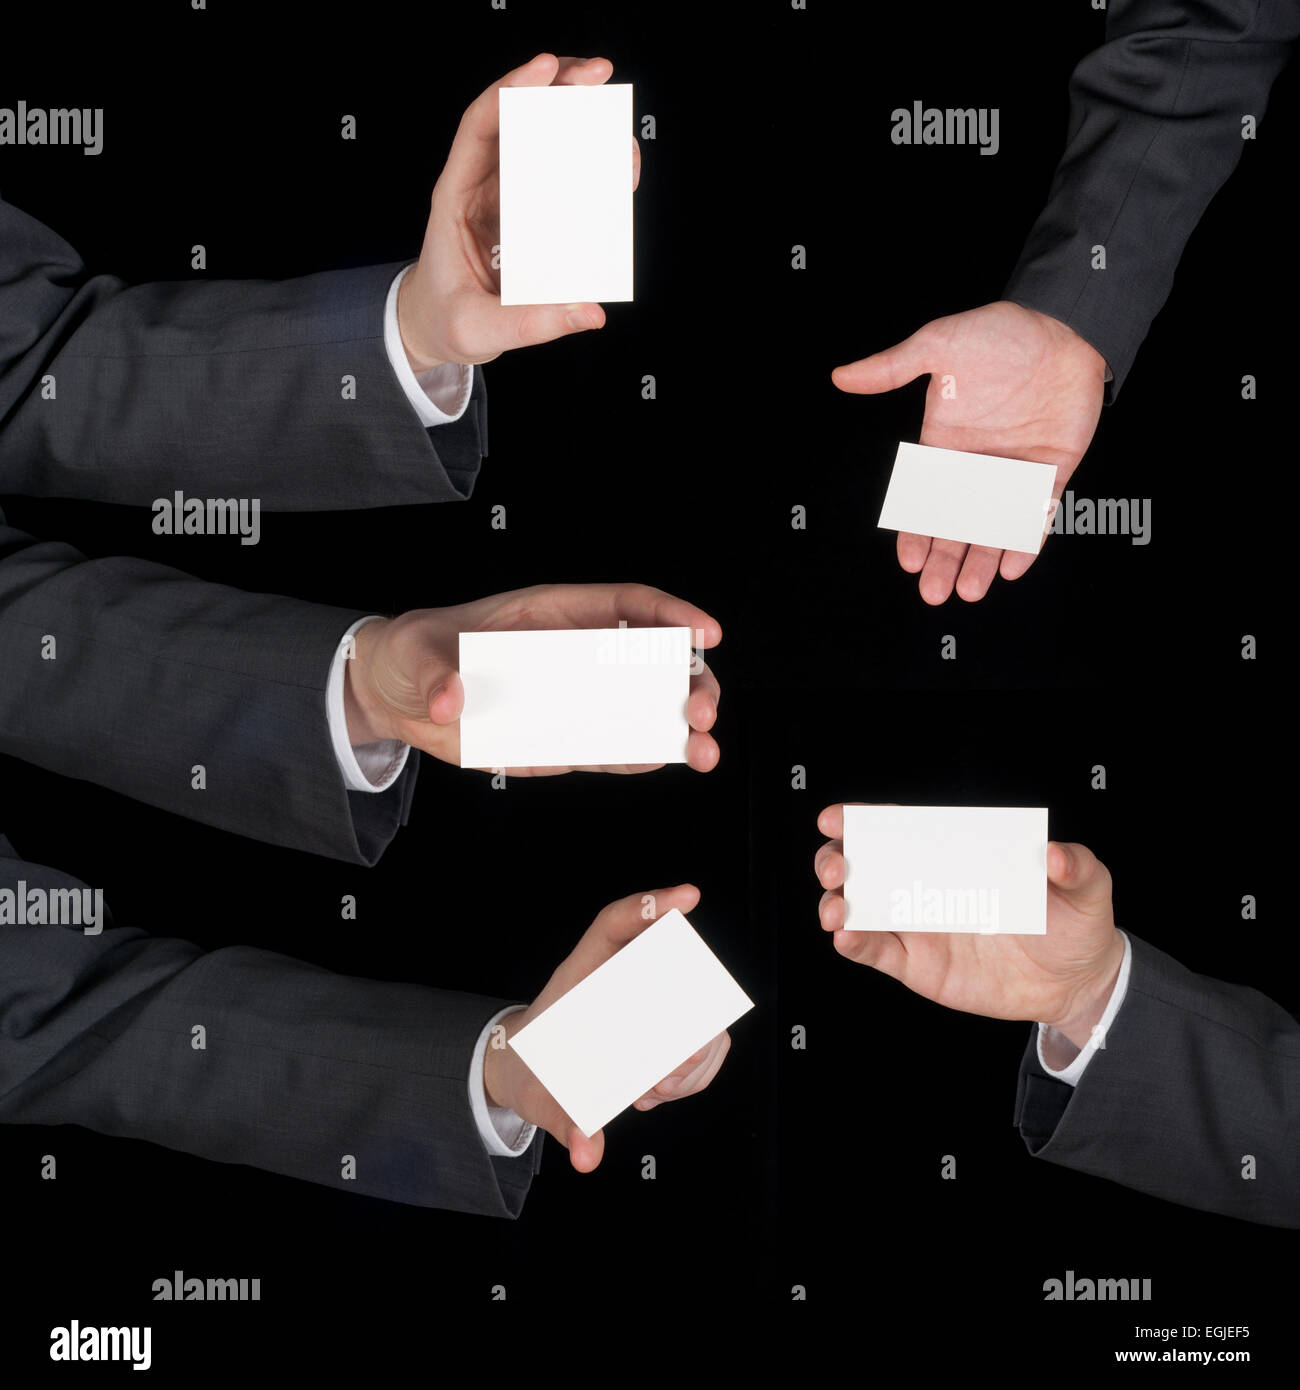 Hands hold business cards collage on black stock photo 79082505 alamy hands hold business cards collage on black colourmoves